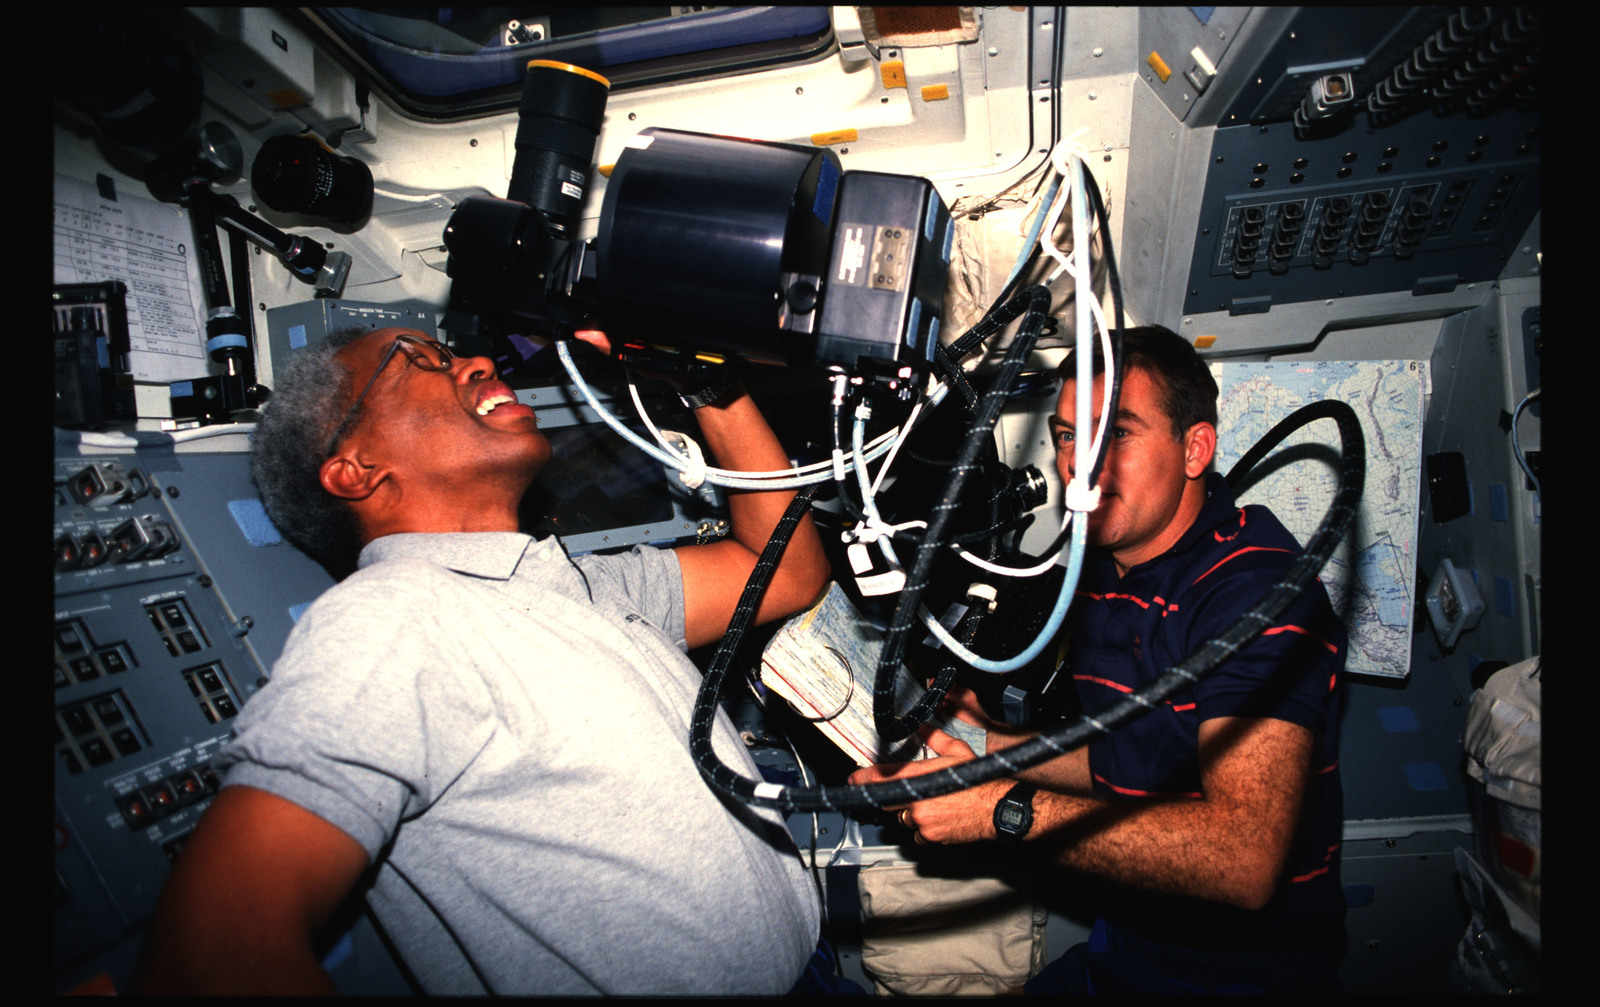 STS053-239-011 - STS-053 - Crewmembers using the HERCULES photographic system